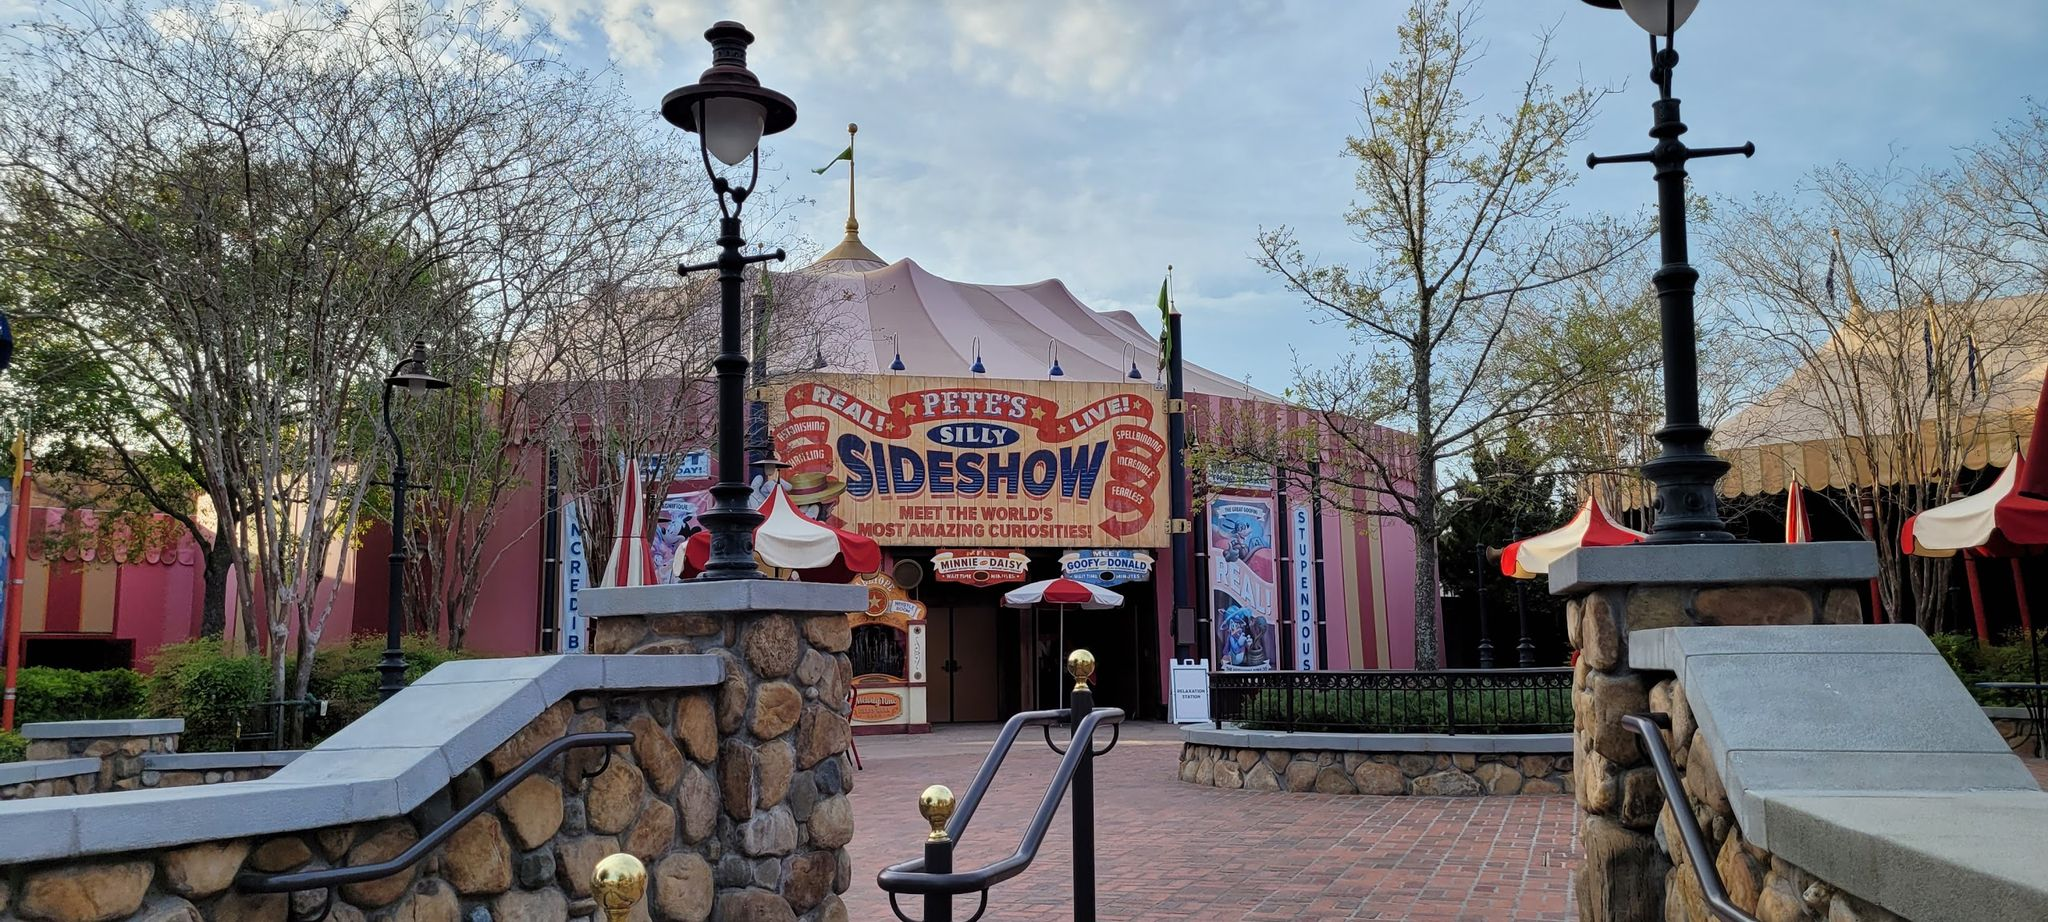 Storybook Circus in the Magic Kingdom to receive 50th Anniversary Updates 3